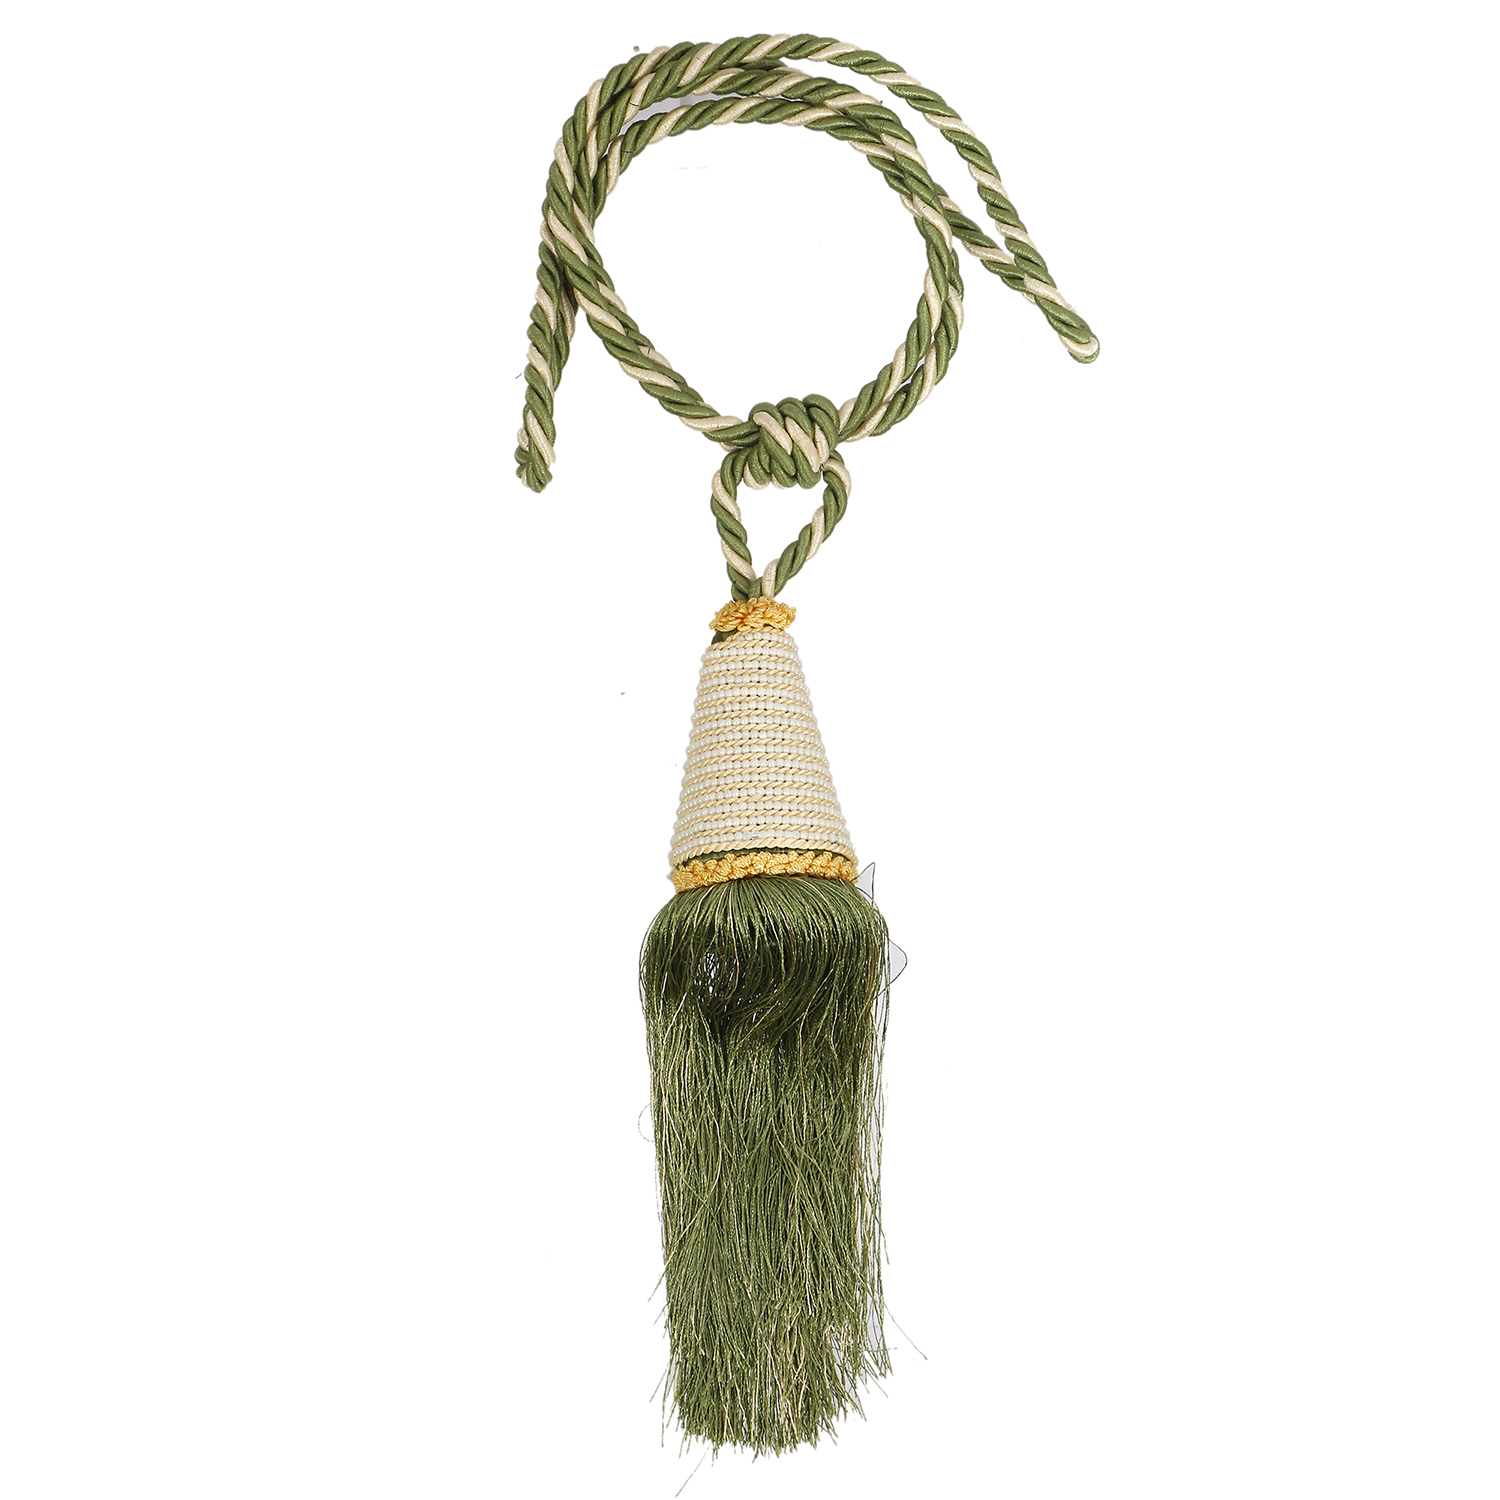 Kuber Industries Beads Beautiful Design Polyester 1 Piece Curtain Tie Back Tassel Set (Green)